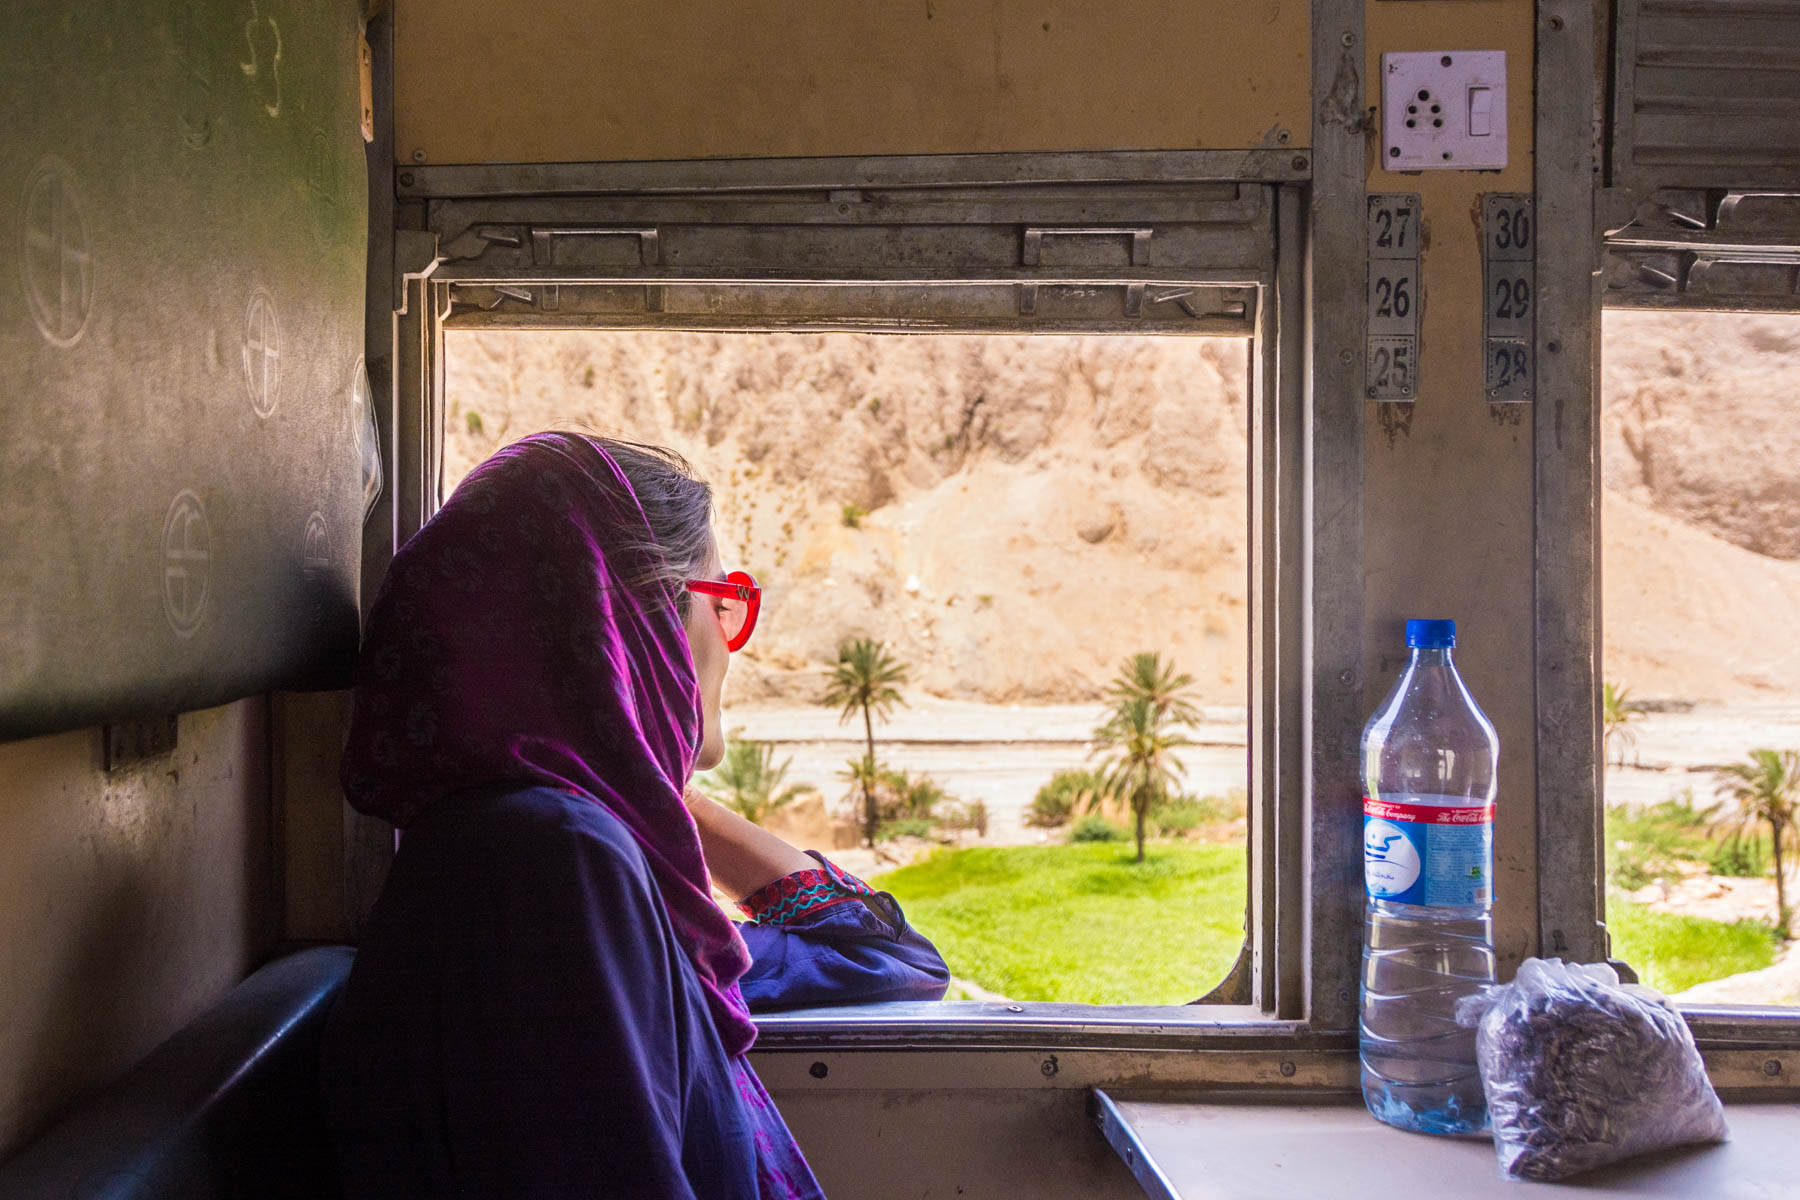 Looking out the window of the train from Quetta to Karachi, Pakistan